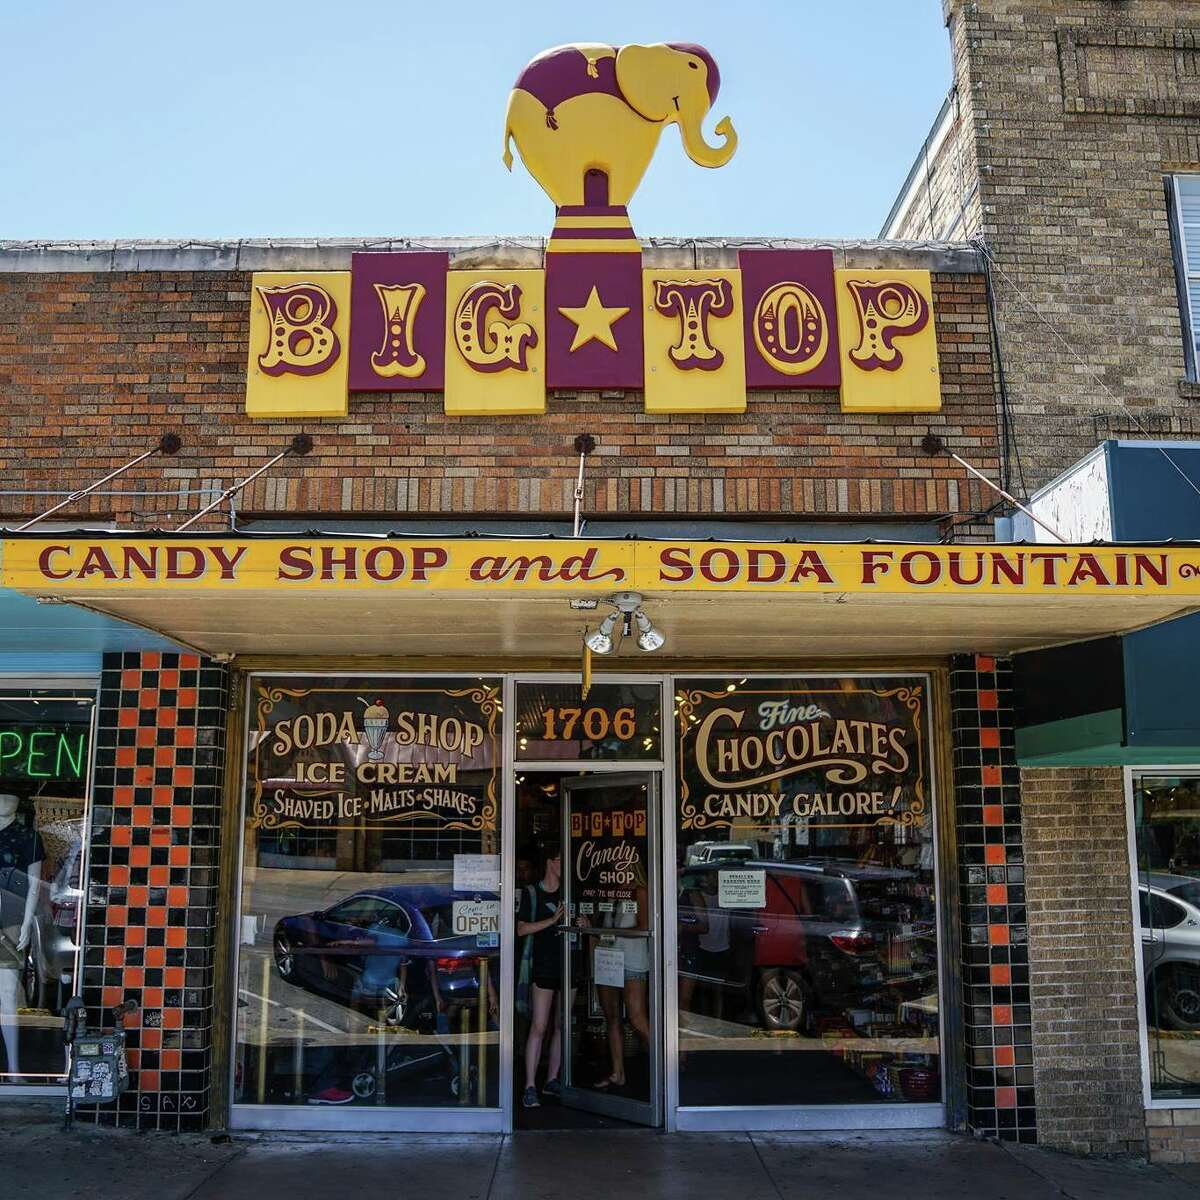 Big Top Candy Shop1706 S Congress Ave Austin, TX 78704(512) 462-2220 Located in the heart of Austin, Big Top Candy Shop has a circus theme. It boasts everything from vintage candy to an enormous old-fashioned soda fountain ready to take your order. Photo: Yelp/Ralph C.